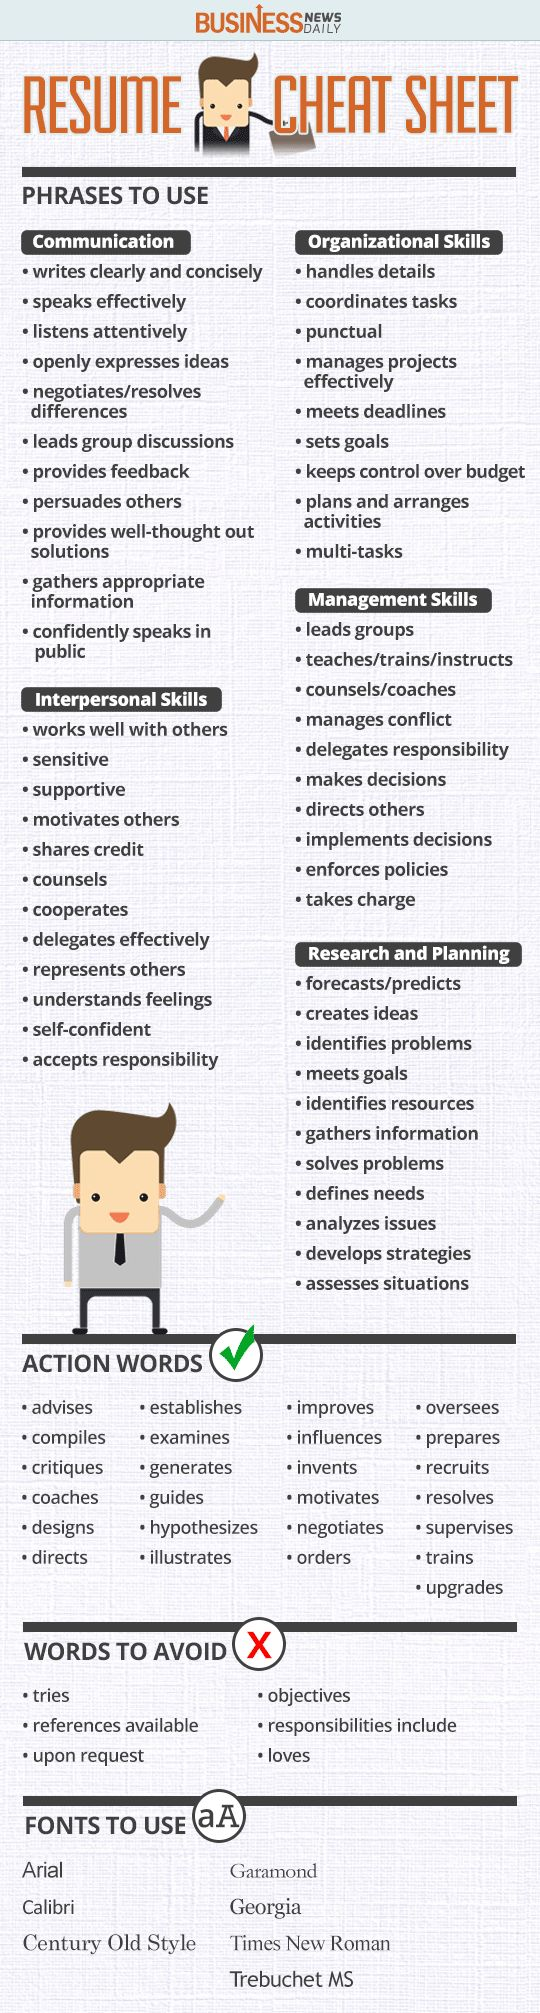 Opposenewapstandardsus  Scenic  Ideas About Resume On Pinterest  Cv Format Resume Cv And  With Exquisite Resume Cheat Sheet Infographic Andrews Almost Done With A Complete Unit On Employment Which With Divine Professional Experience Resume Also Resume Objective Statements Examples In Addition Entry Level Human Resources Resume And Font Size On Resume As Well As Hospitality Resumes Additionally Simple Objective For Resume From Pinterestcom With Opposenewapstandardsus  Exquisite  Ideas About Resume On Pinterest  Cv Format Resume Cv And  With Divine Resume Cheat Sheet Infographic Andrews Almost Done With A Complete Unit On Employment Which And Scenic Professional Experience Resume Also Resume Objective Statements Examples In Addition Entry Level Human Resources Resume From Pinterestcom